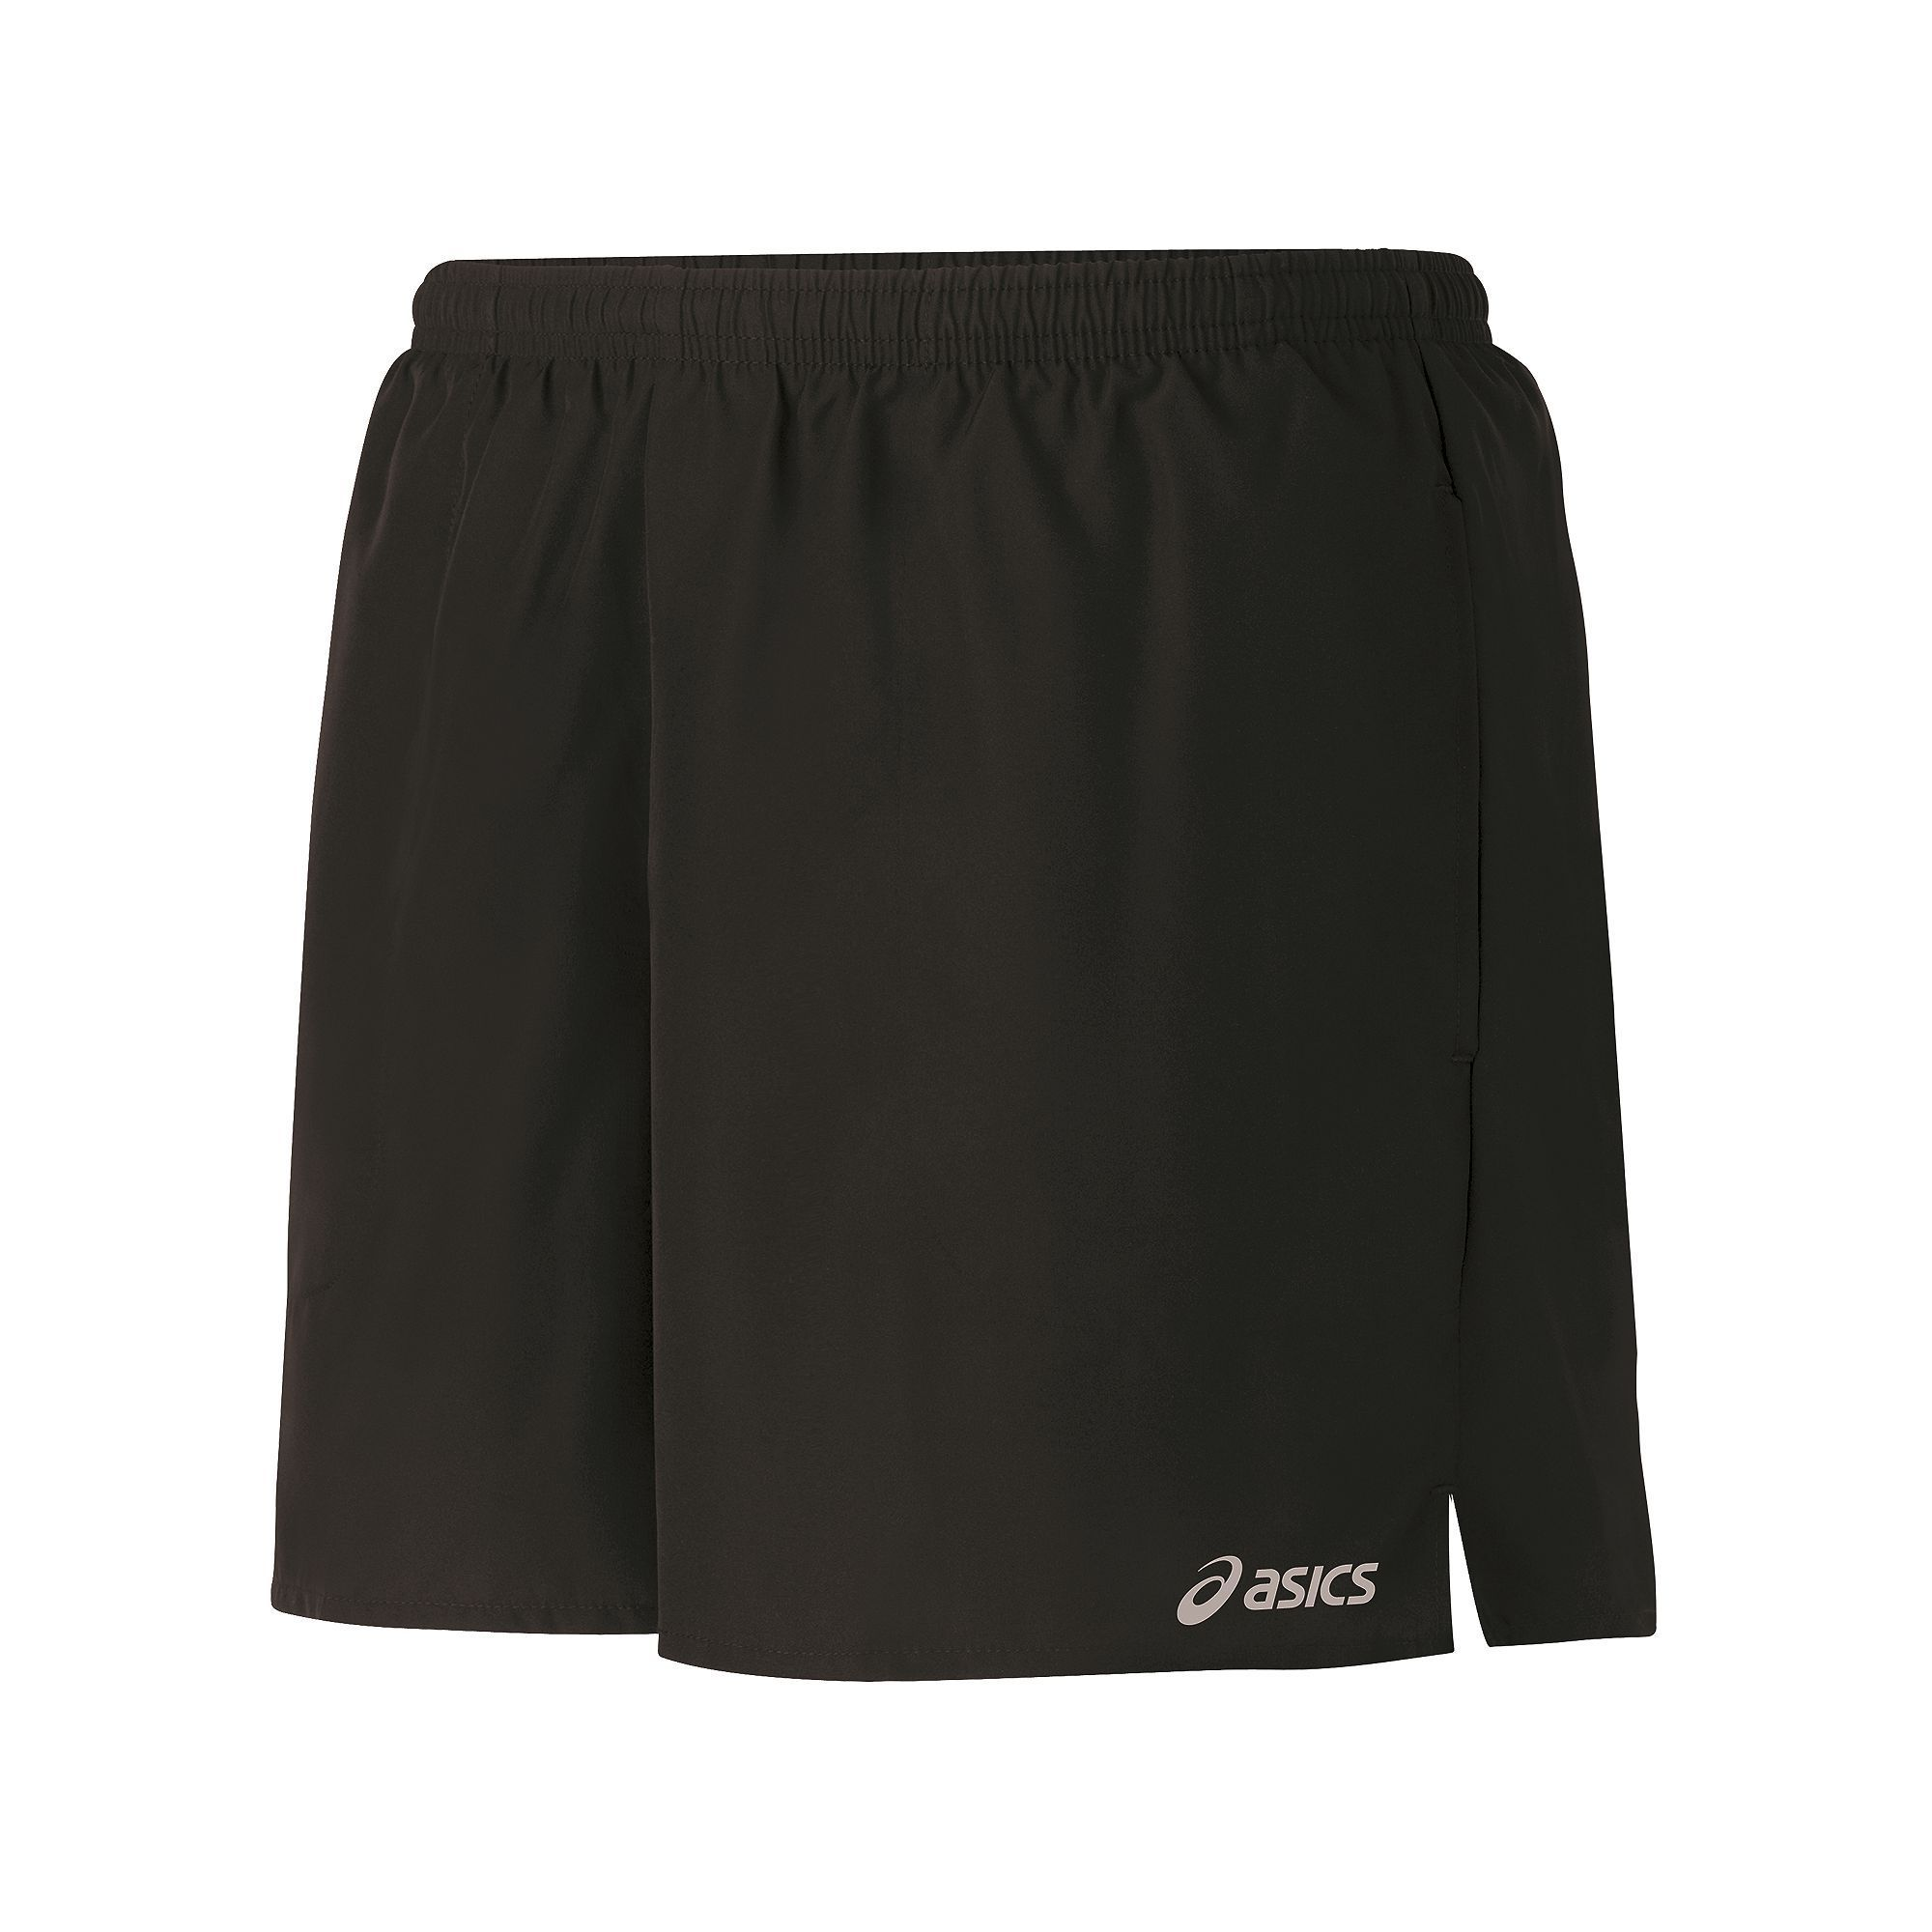 ASICS Hydrology Running Shorts - Women's Black